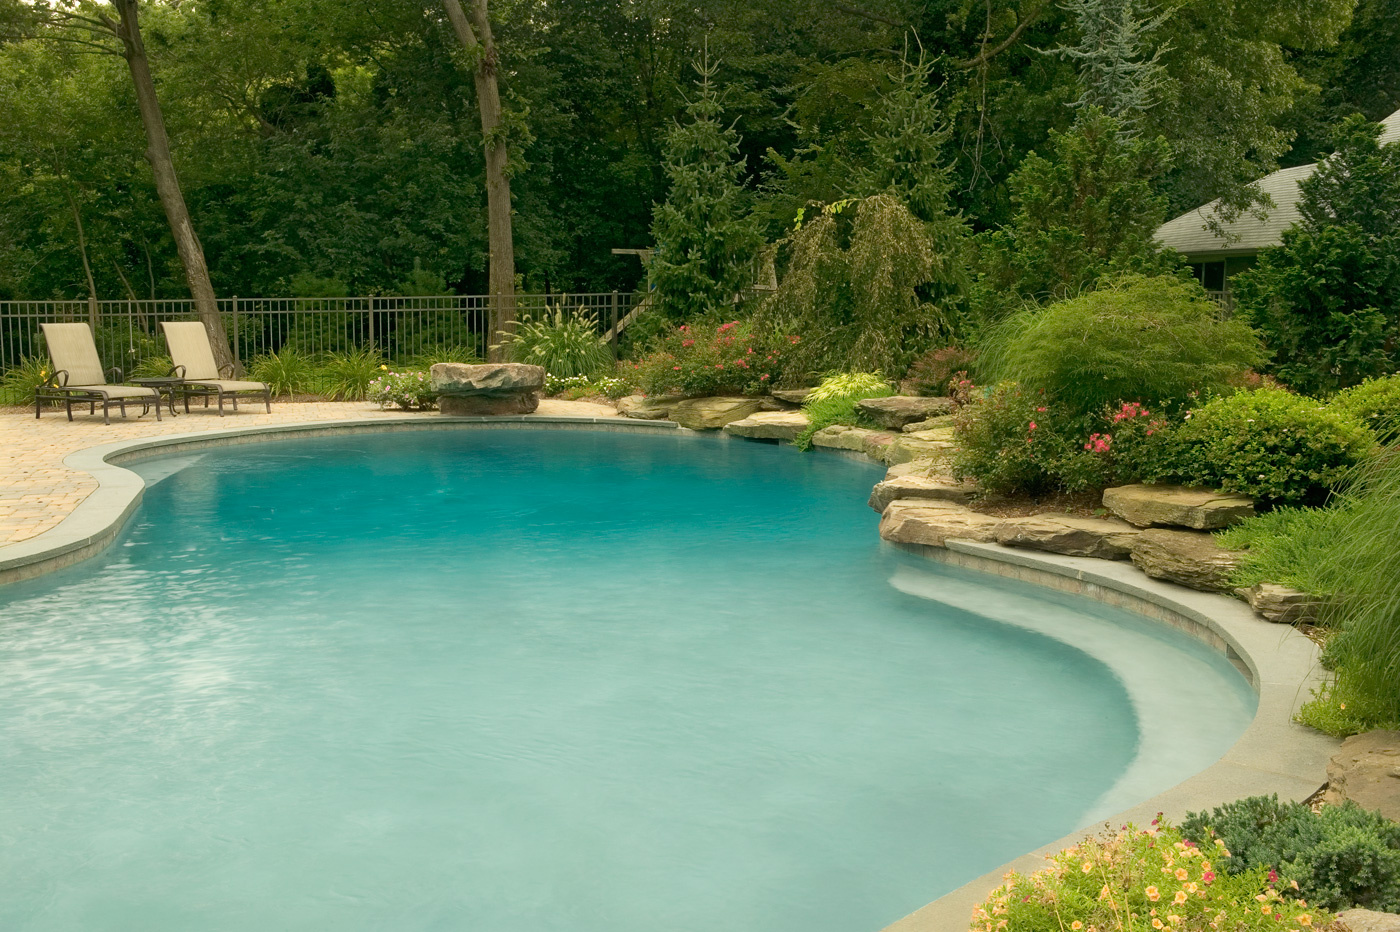 Building a natural swimming pool - Natural Swimming Pool In Nj By Cording Landscape Design